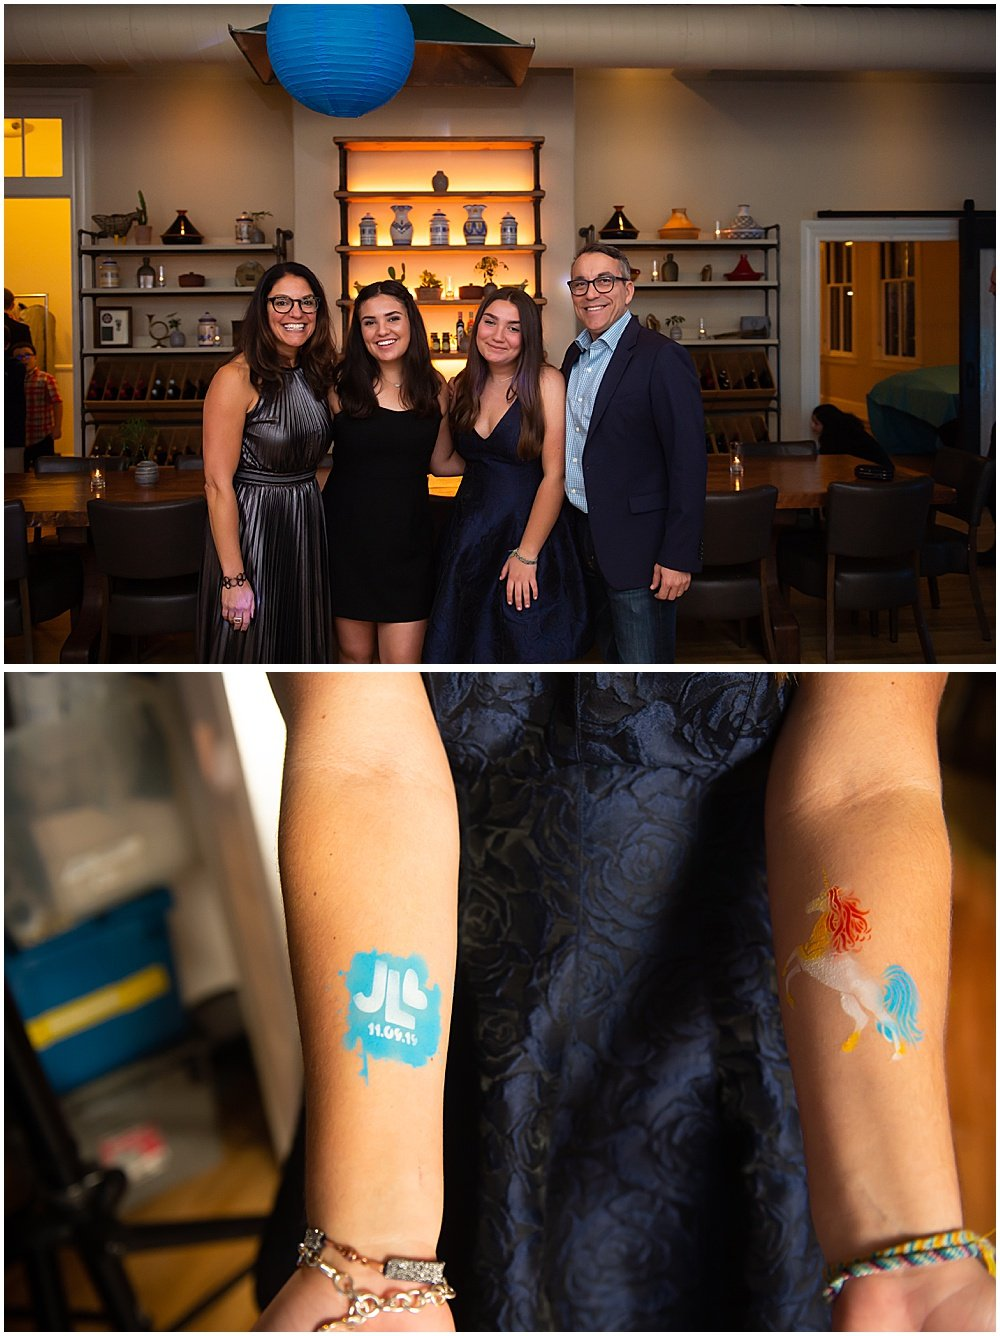 Spray-on tattoo for bat mitzvah